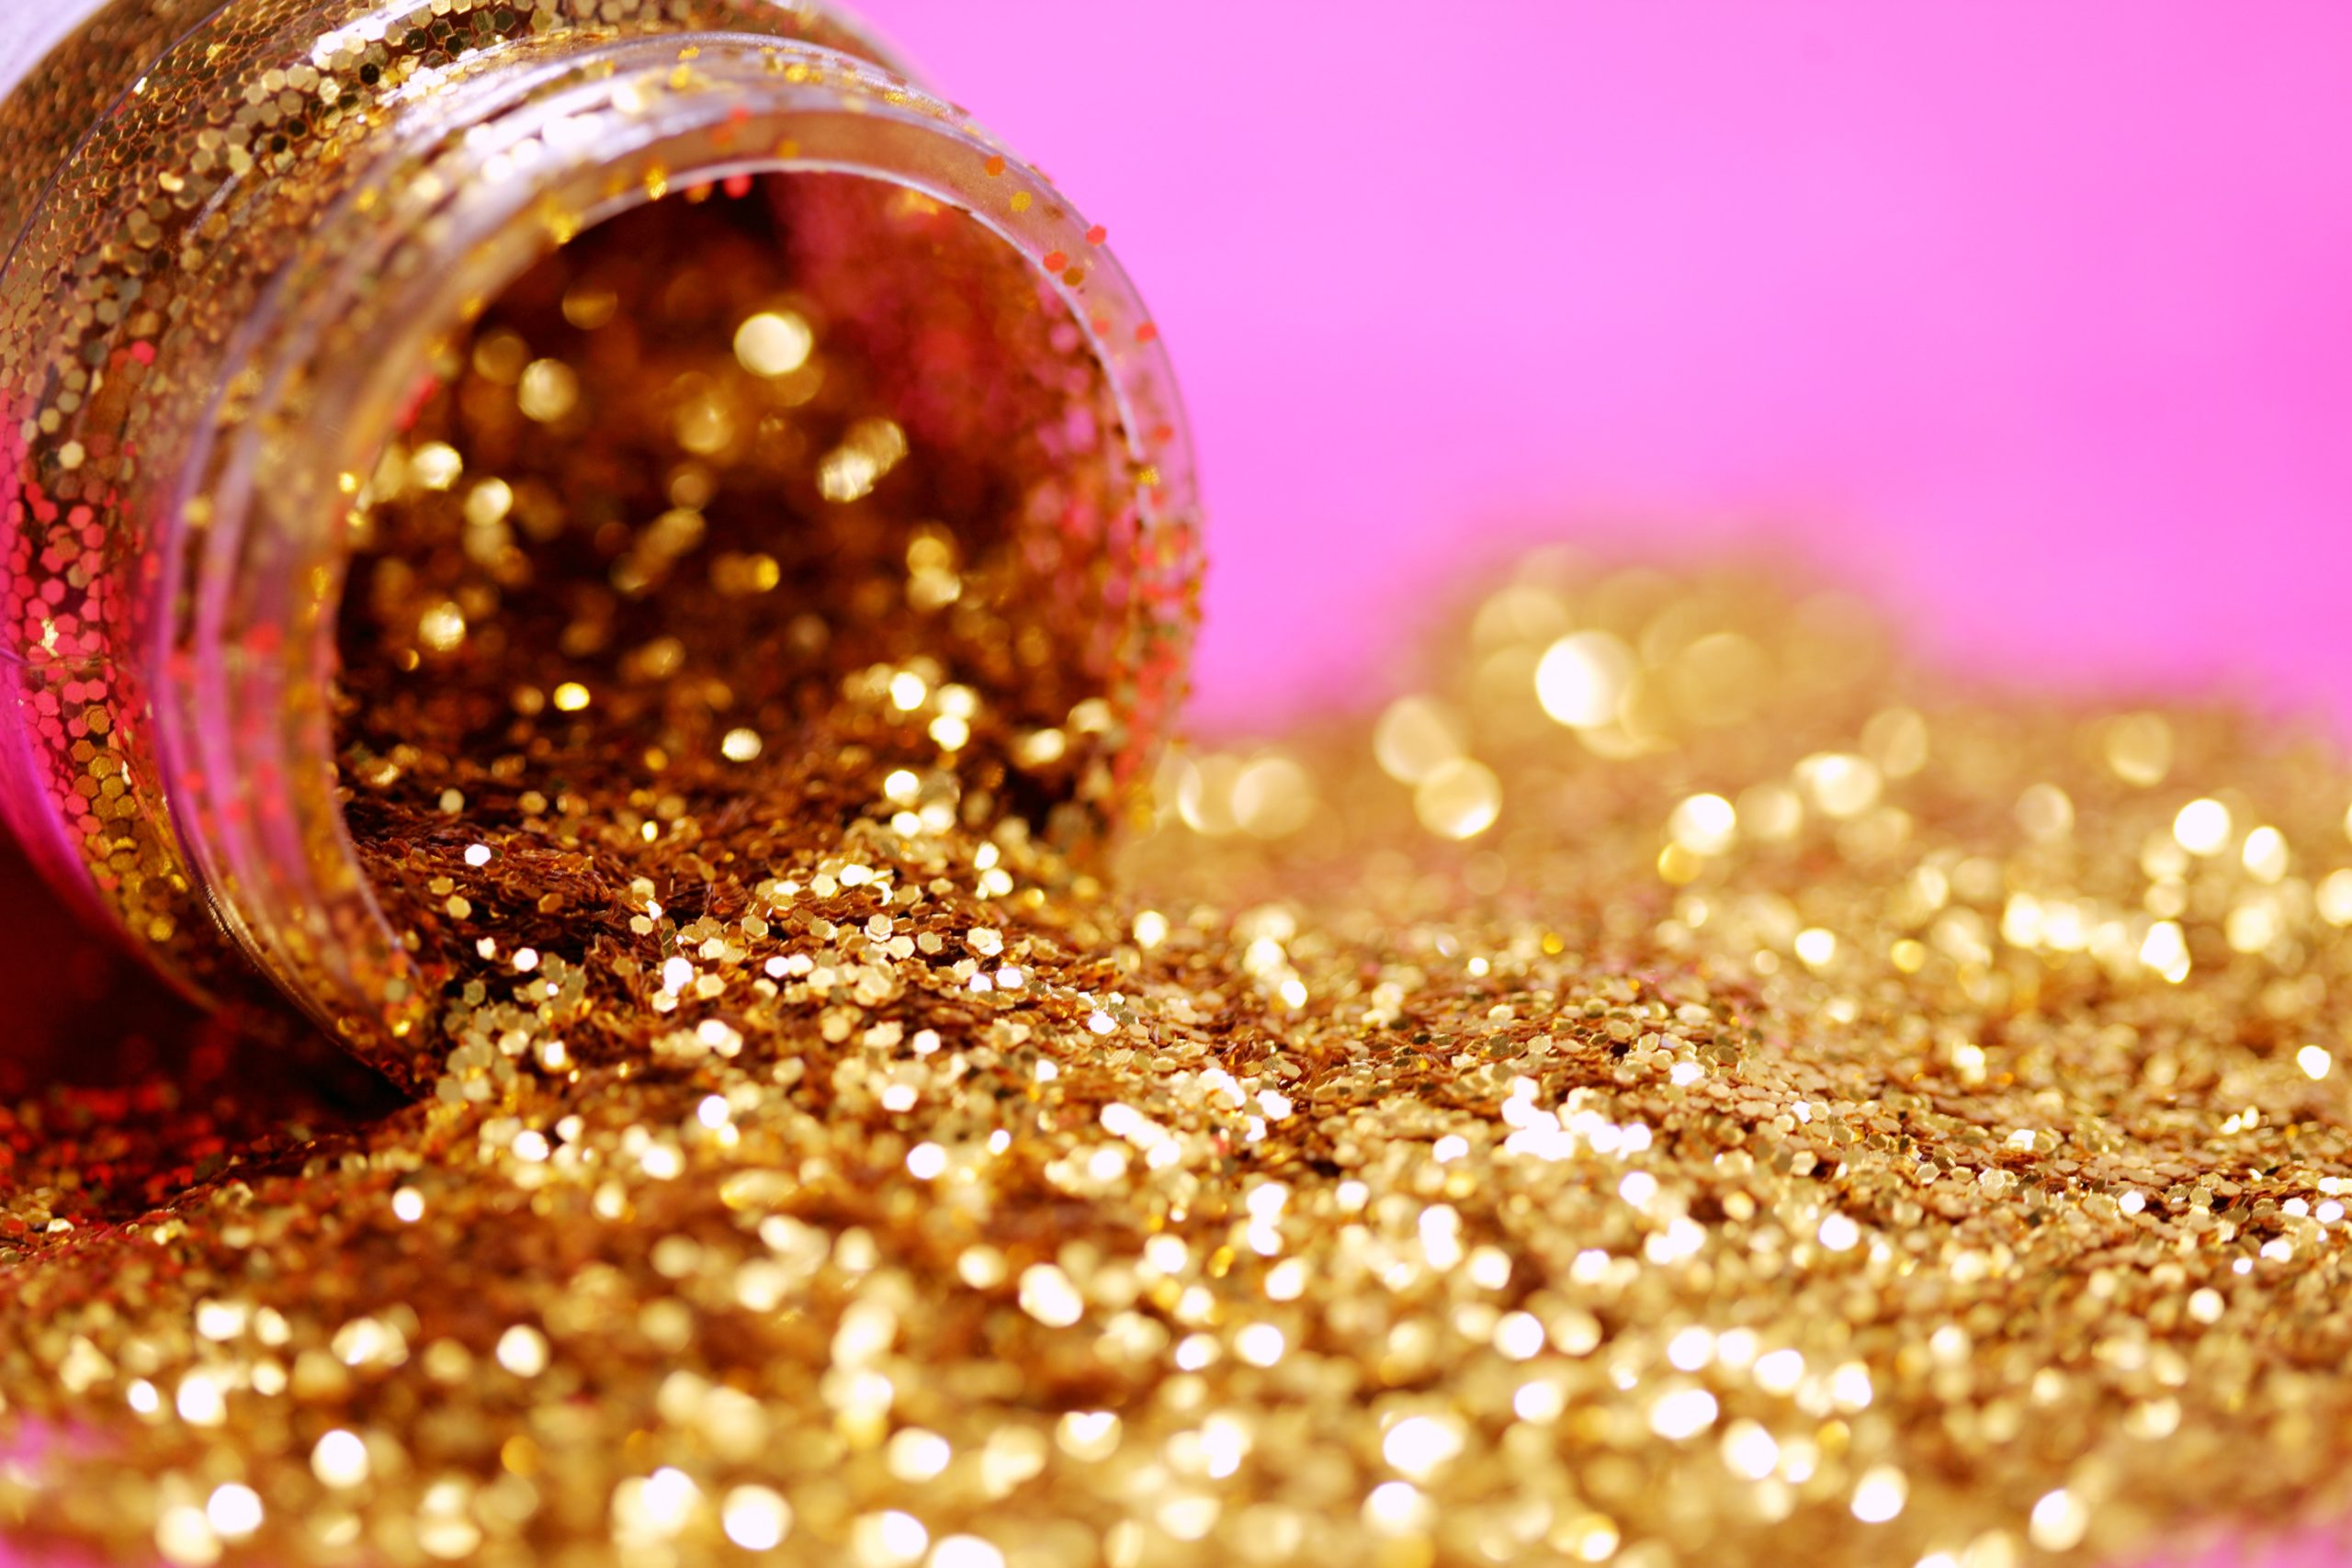 A bottle of gold glitter poured out against a pink background.